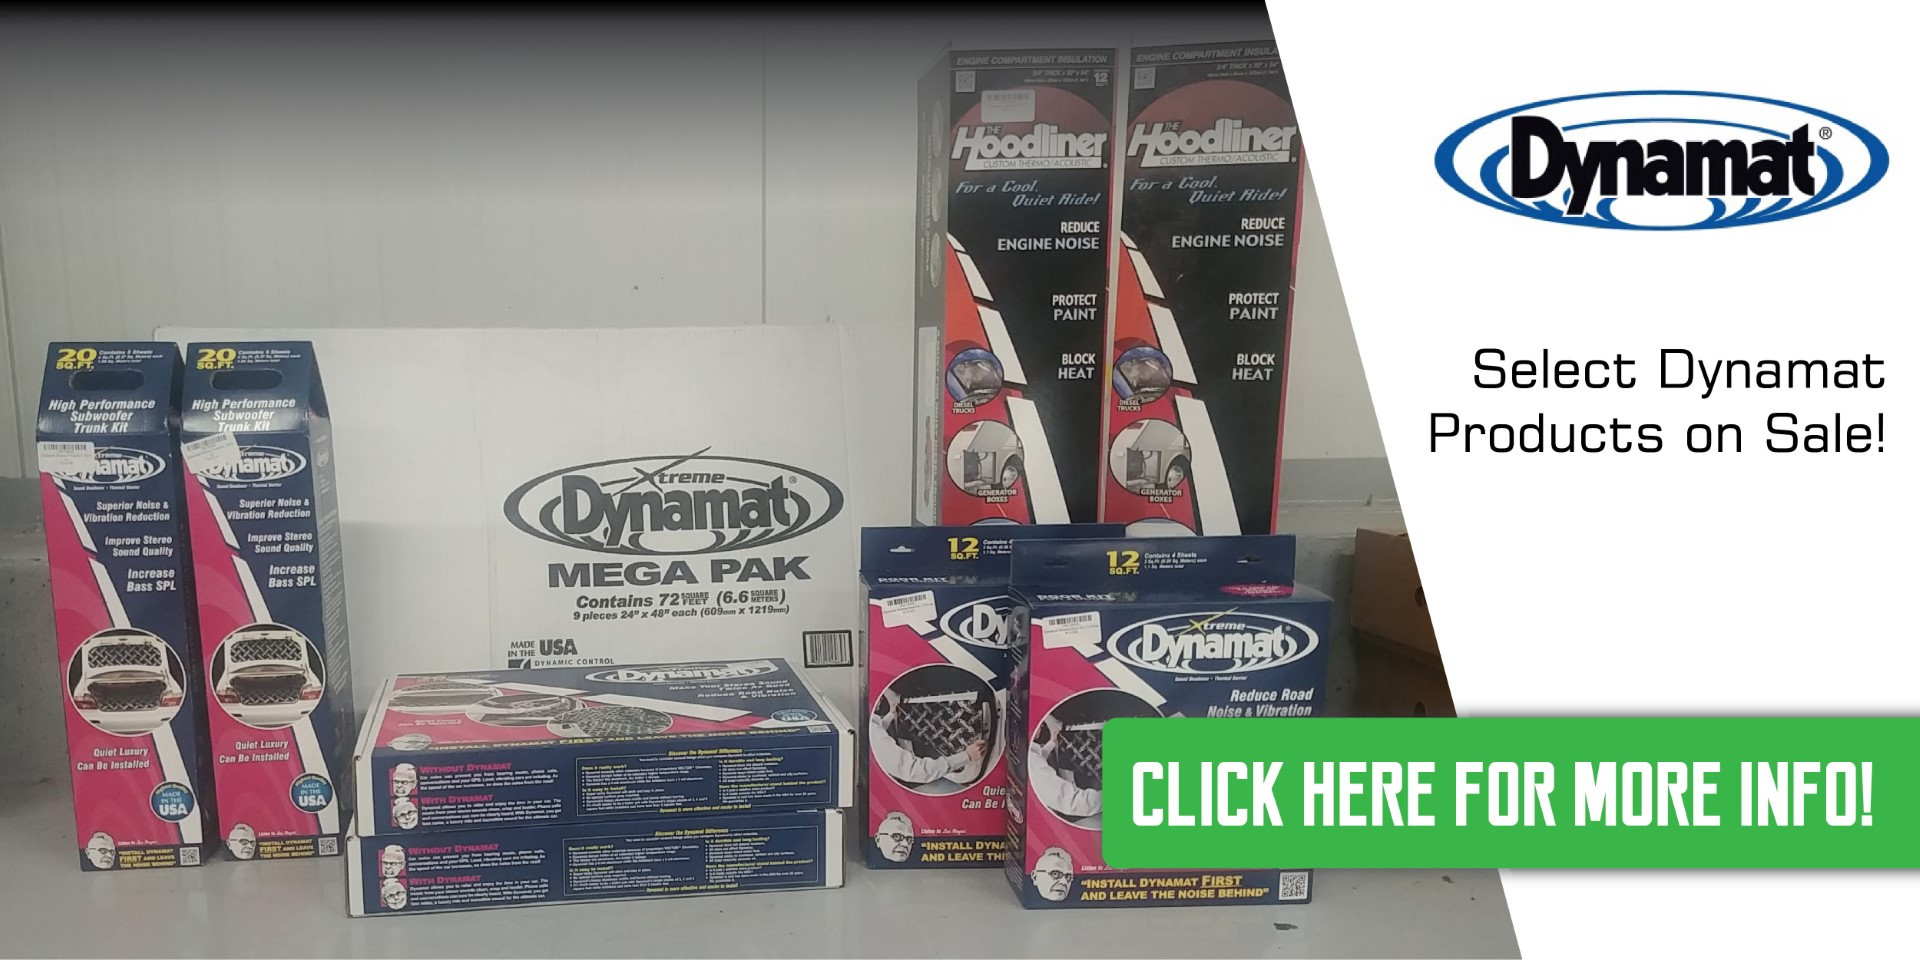 Dynamat Products